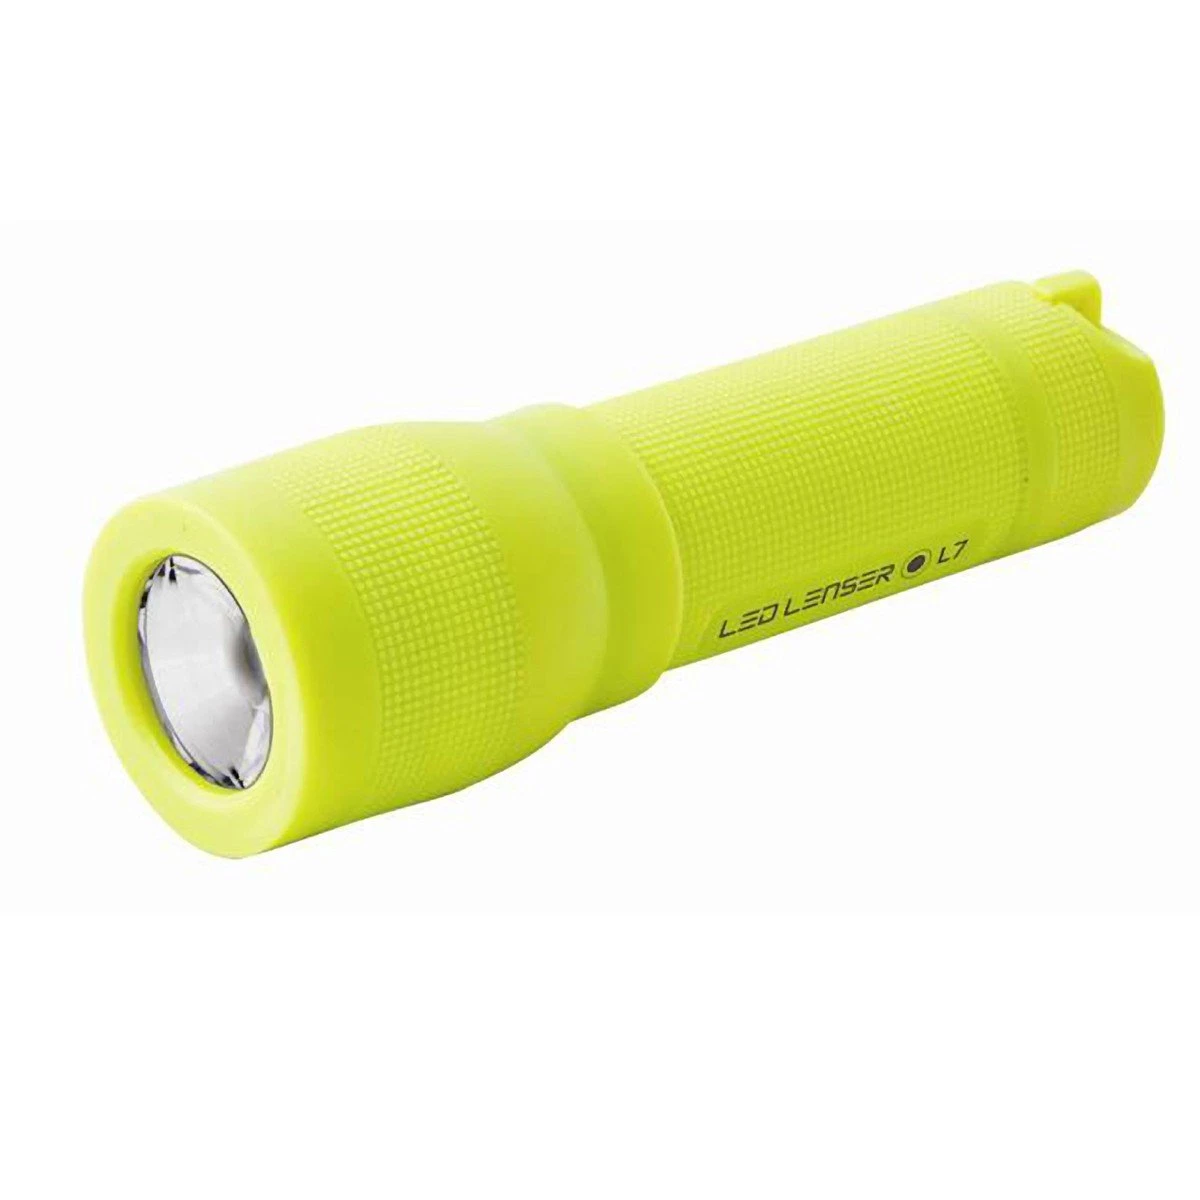 Torch Led Ledlenser L7 - 115Lm -High Visibility Yellow - Clamshell